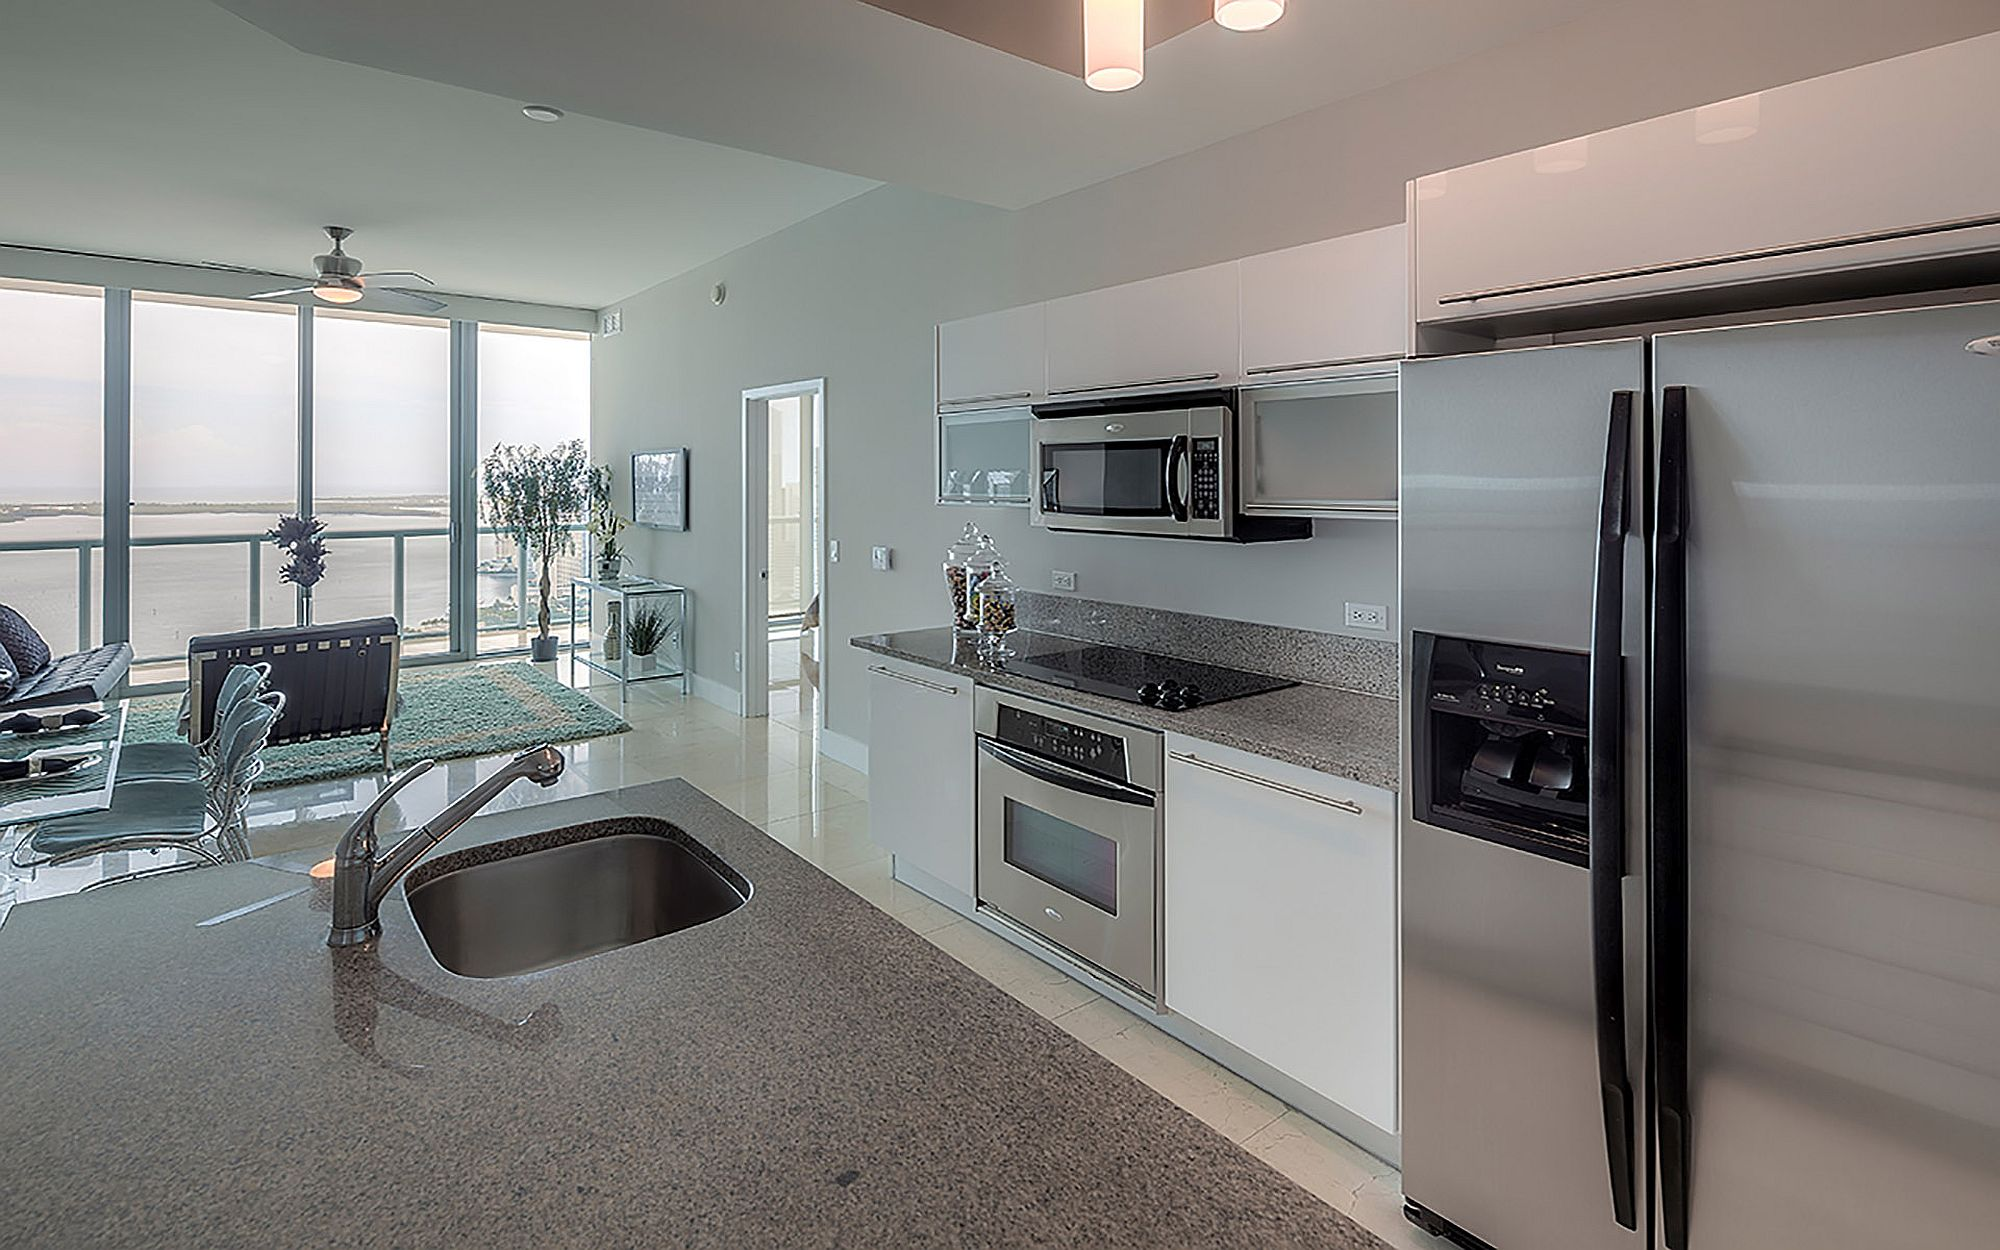 Fabulous kitchen connected to the living area also offers water views